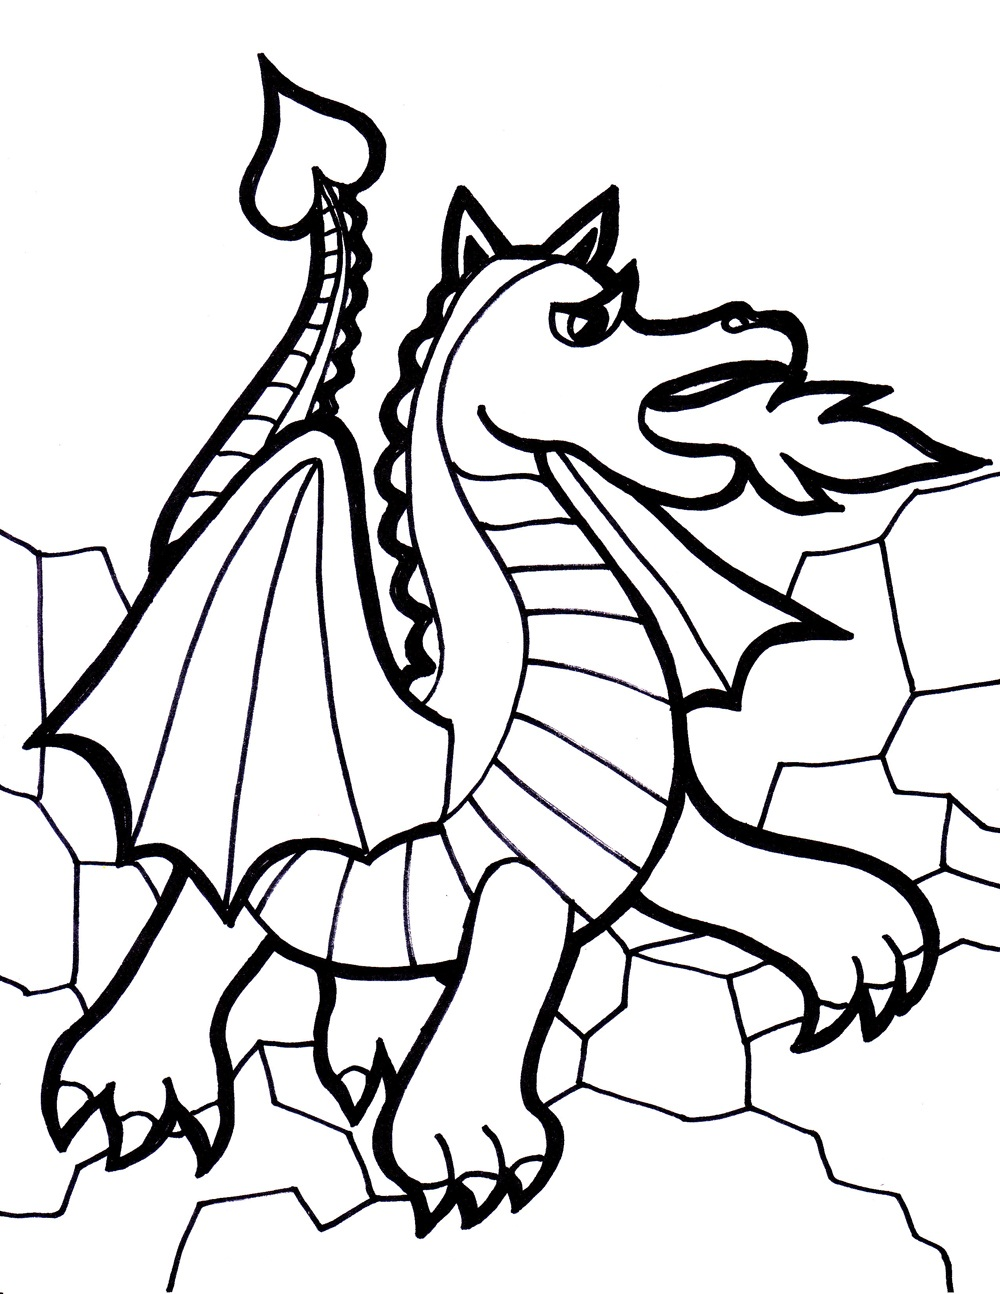 Printable coloring pages of dragons - Coloring Pages Of Dragons